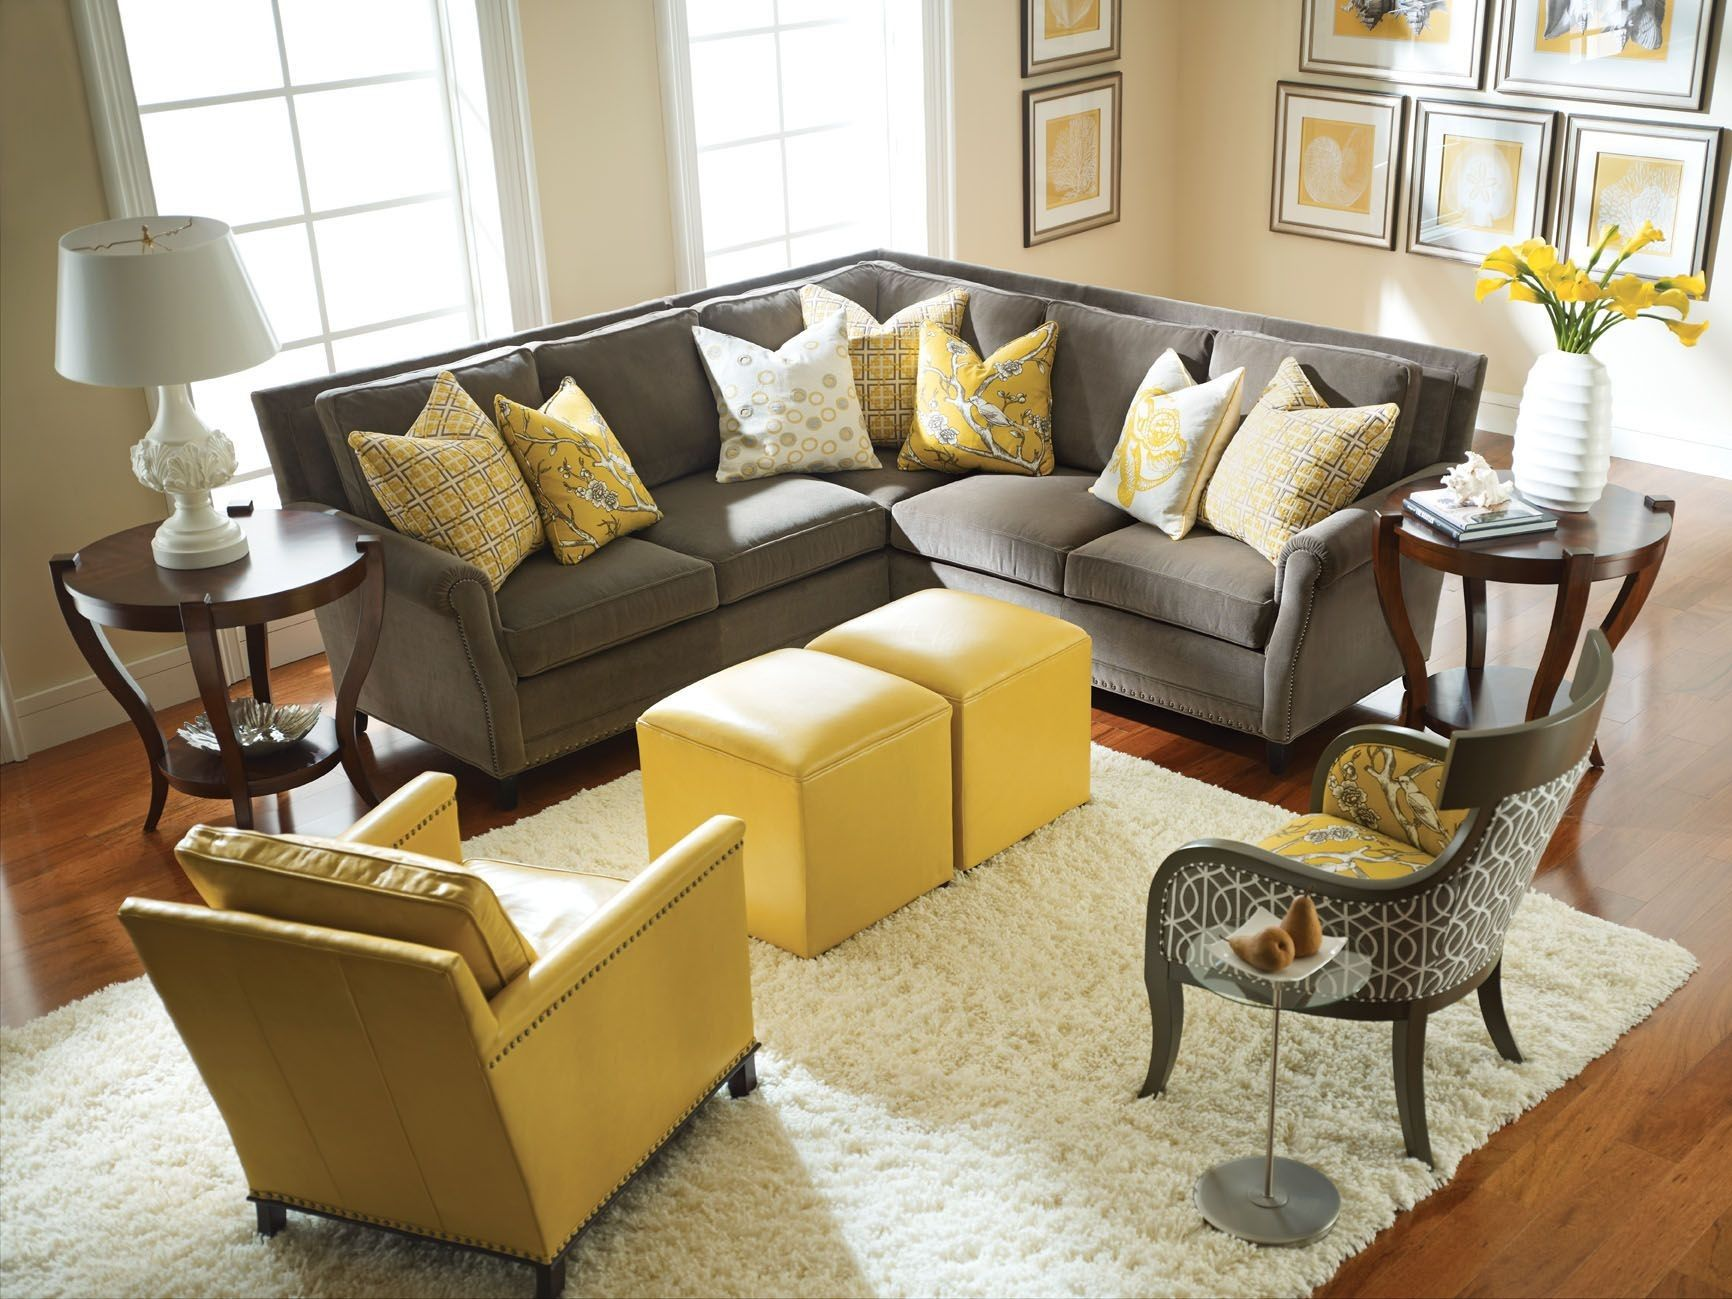 Navy Blue and Cream Living Room Best Of Yellow and Gray Rooms